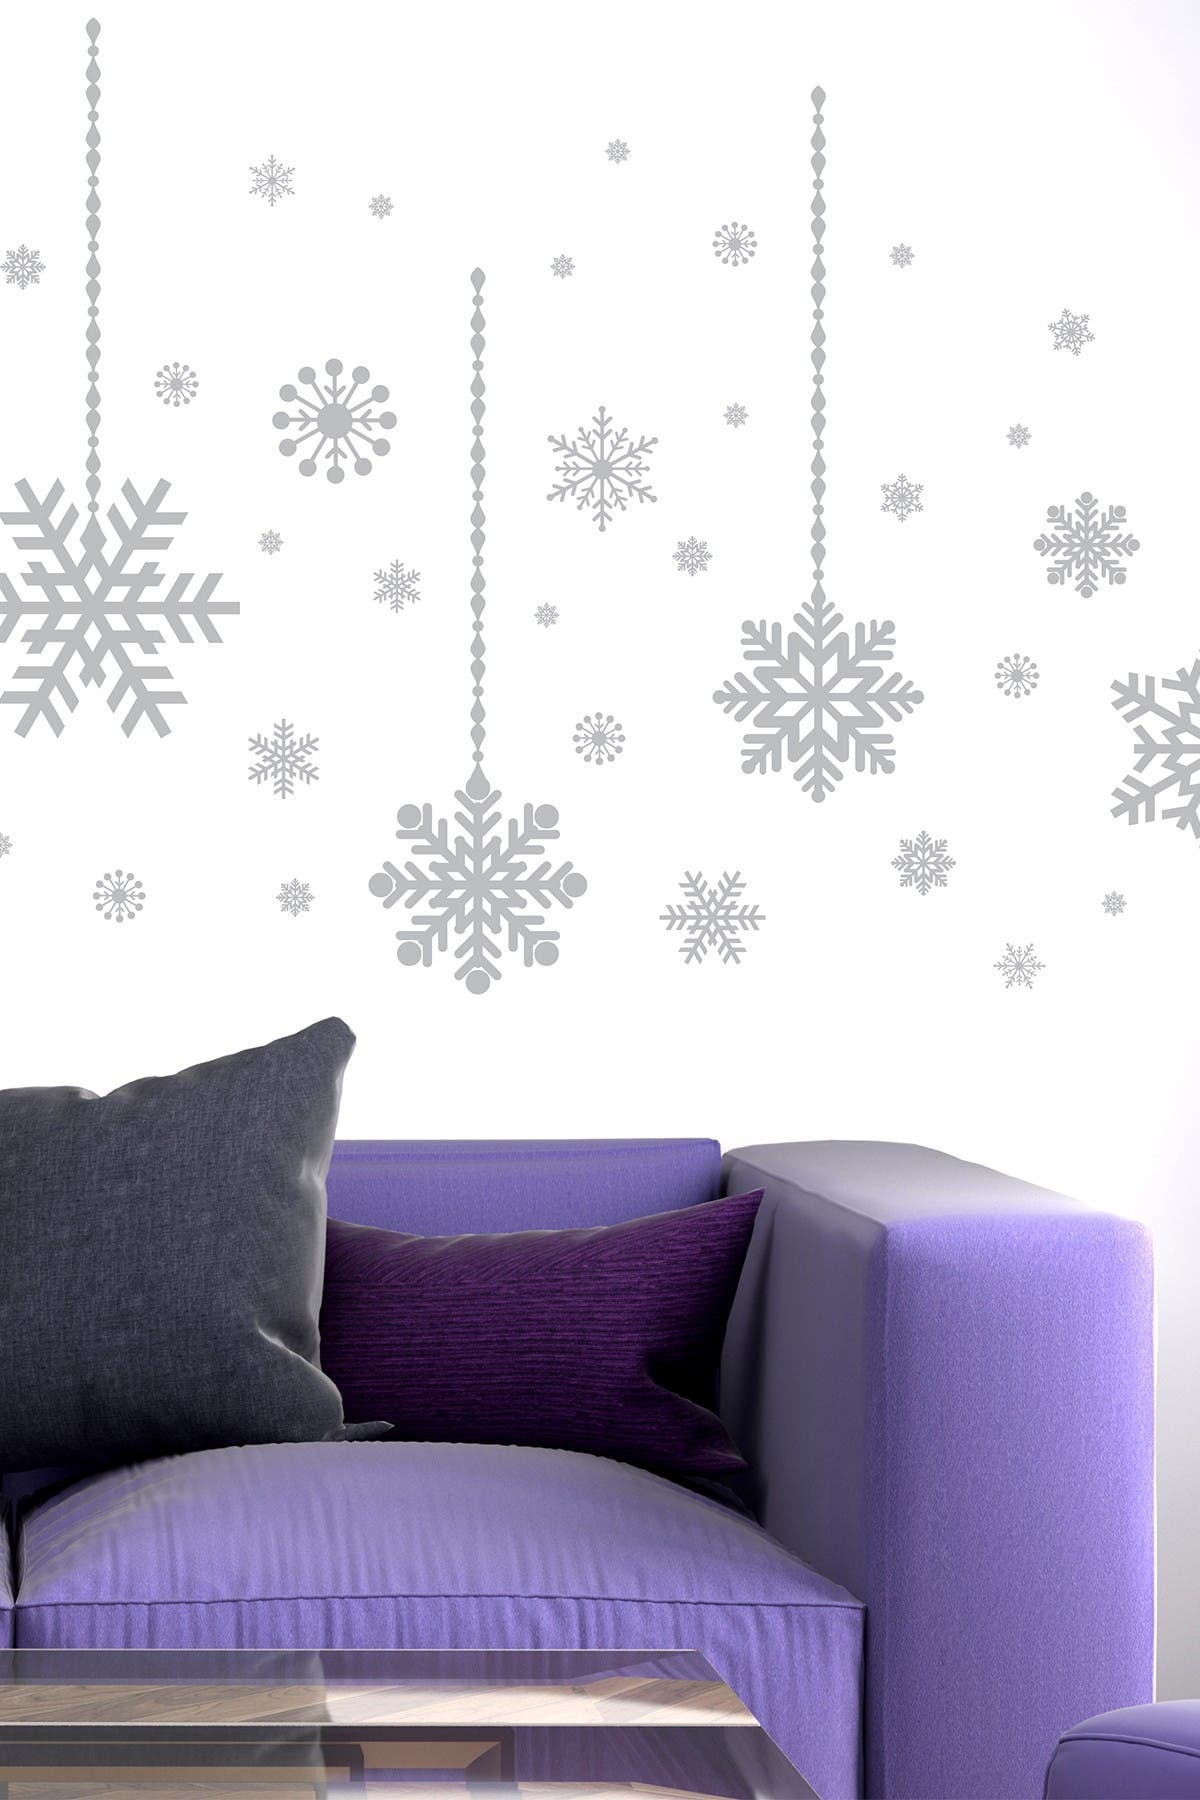 Image of WalPlus Silver Snow Flakes Decal